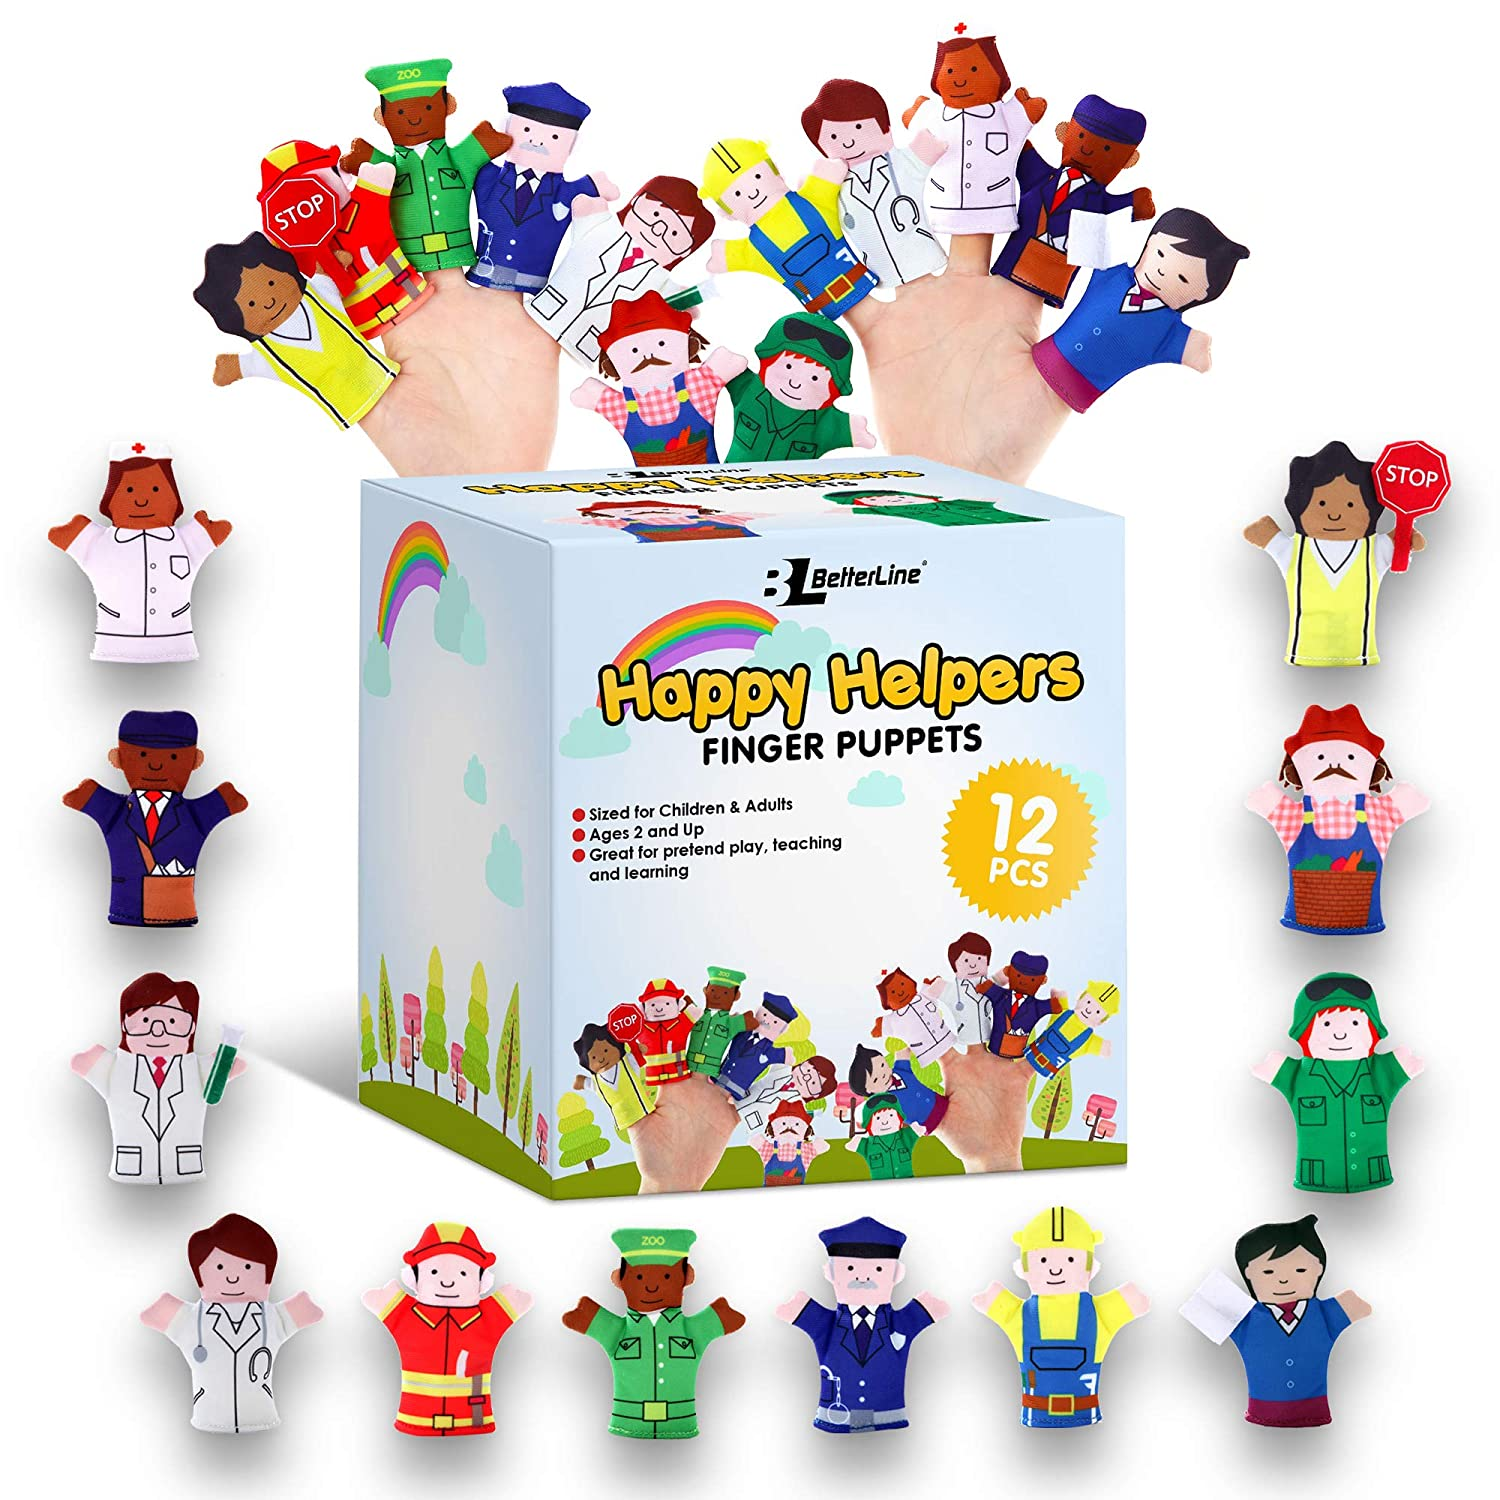 BETTERLINE Happy Helper Finger Puppets 12-Piece Set - Teach and Learn with a Variety of Neighborhood Characters - Fits Adult and Children Fingers